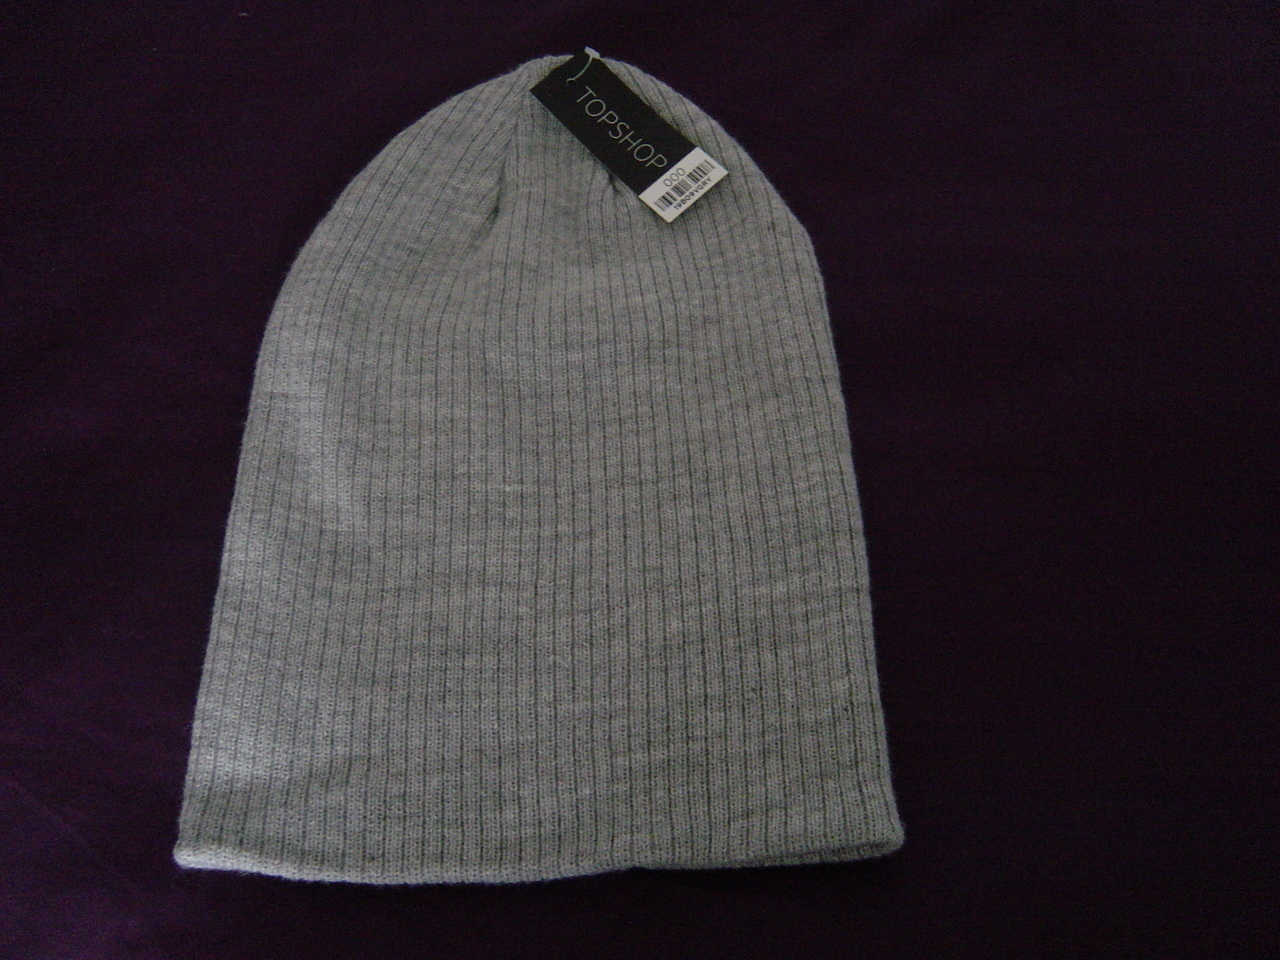 Topshop Ribbed Beanie in Grey NWT